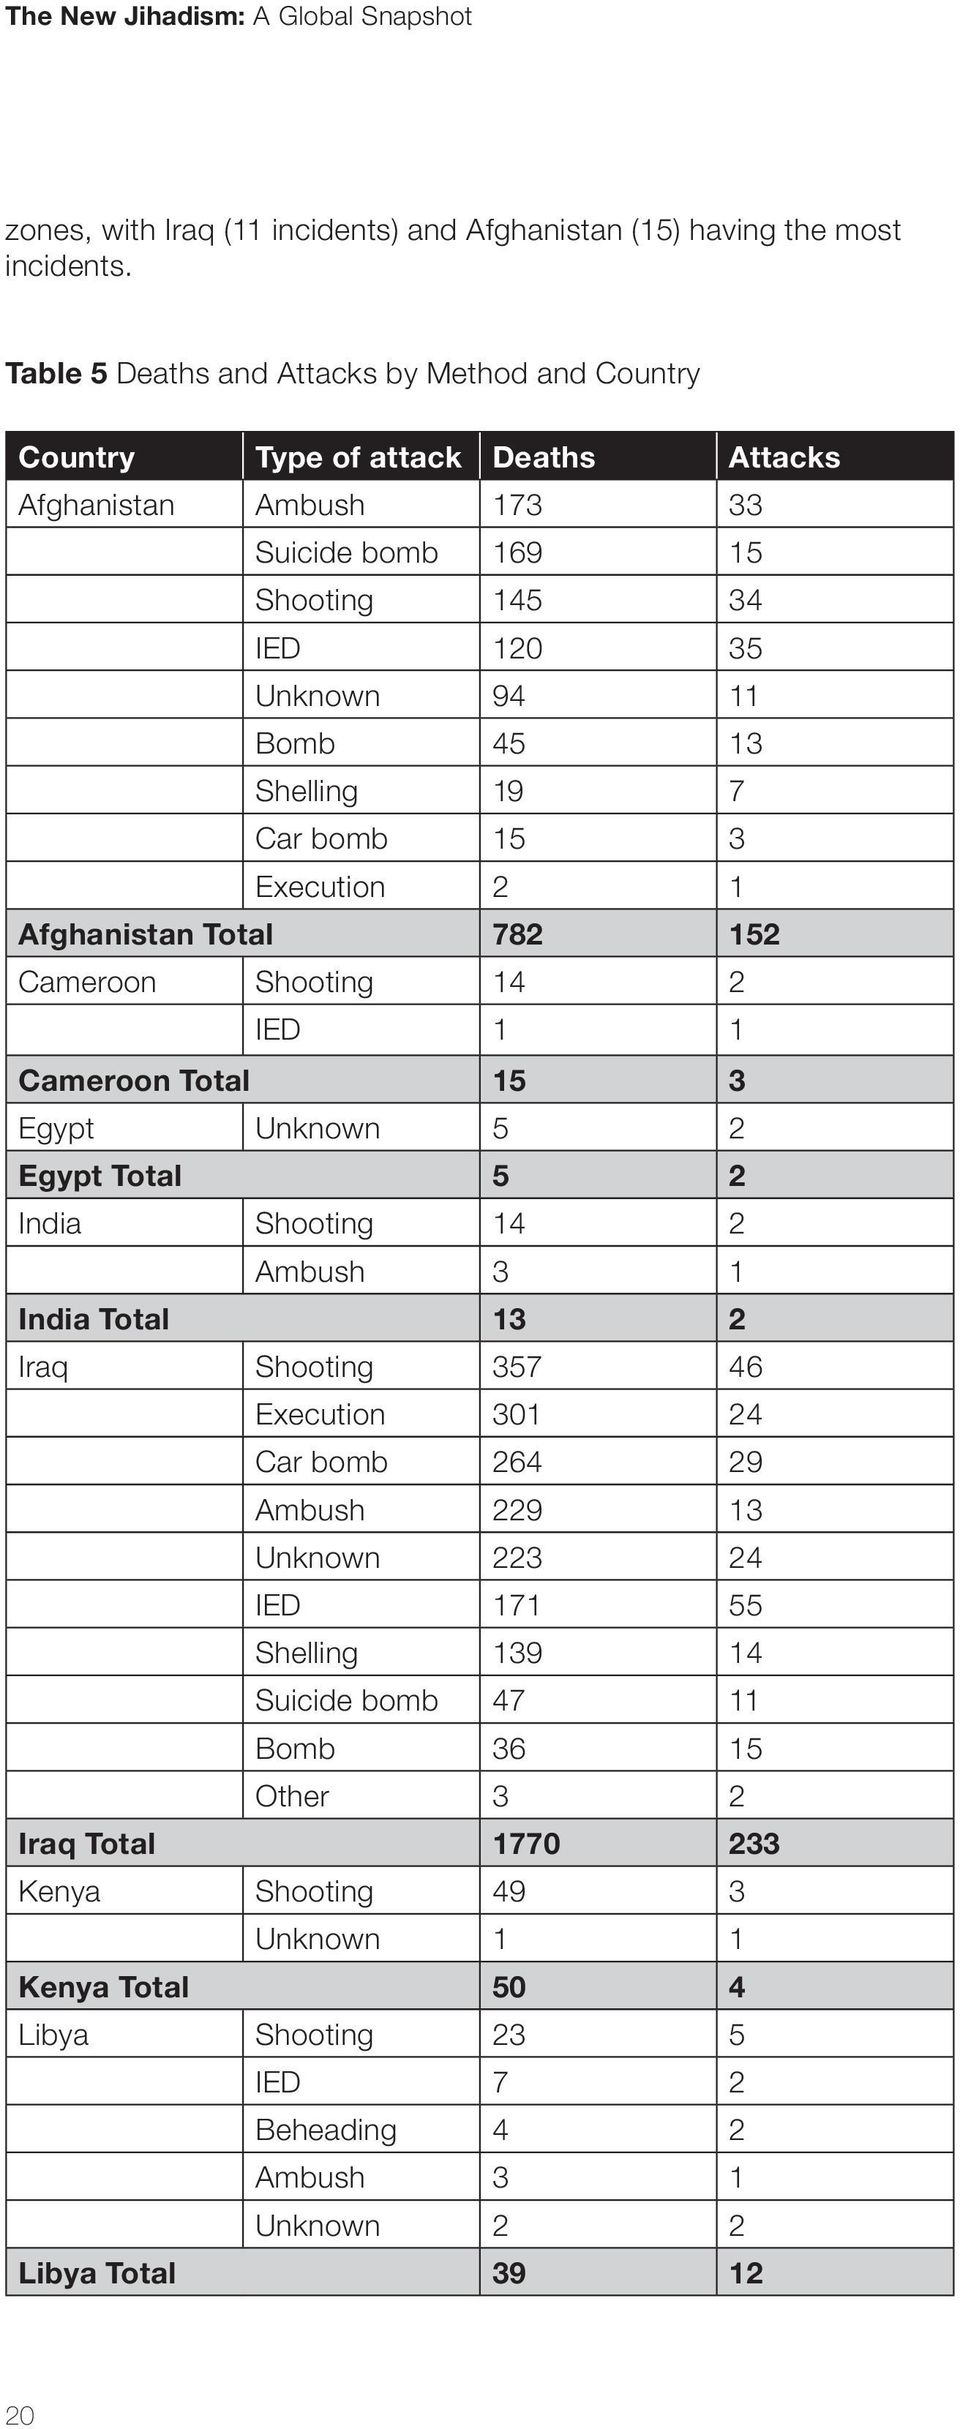 Shelling 19 7 Car bomb 15 3 Execution 2 1 Afghanistan Total 782 152 Cameroon Shooting 14 2 IED 1 1 Cameroon Total 15 3 Egypt Unknown 5 2 Egypt Total 5 2 India Shooting 14 2 Ambush 3 1 India